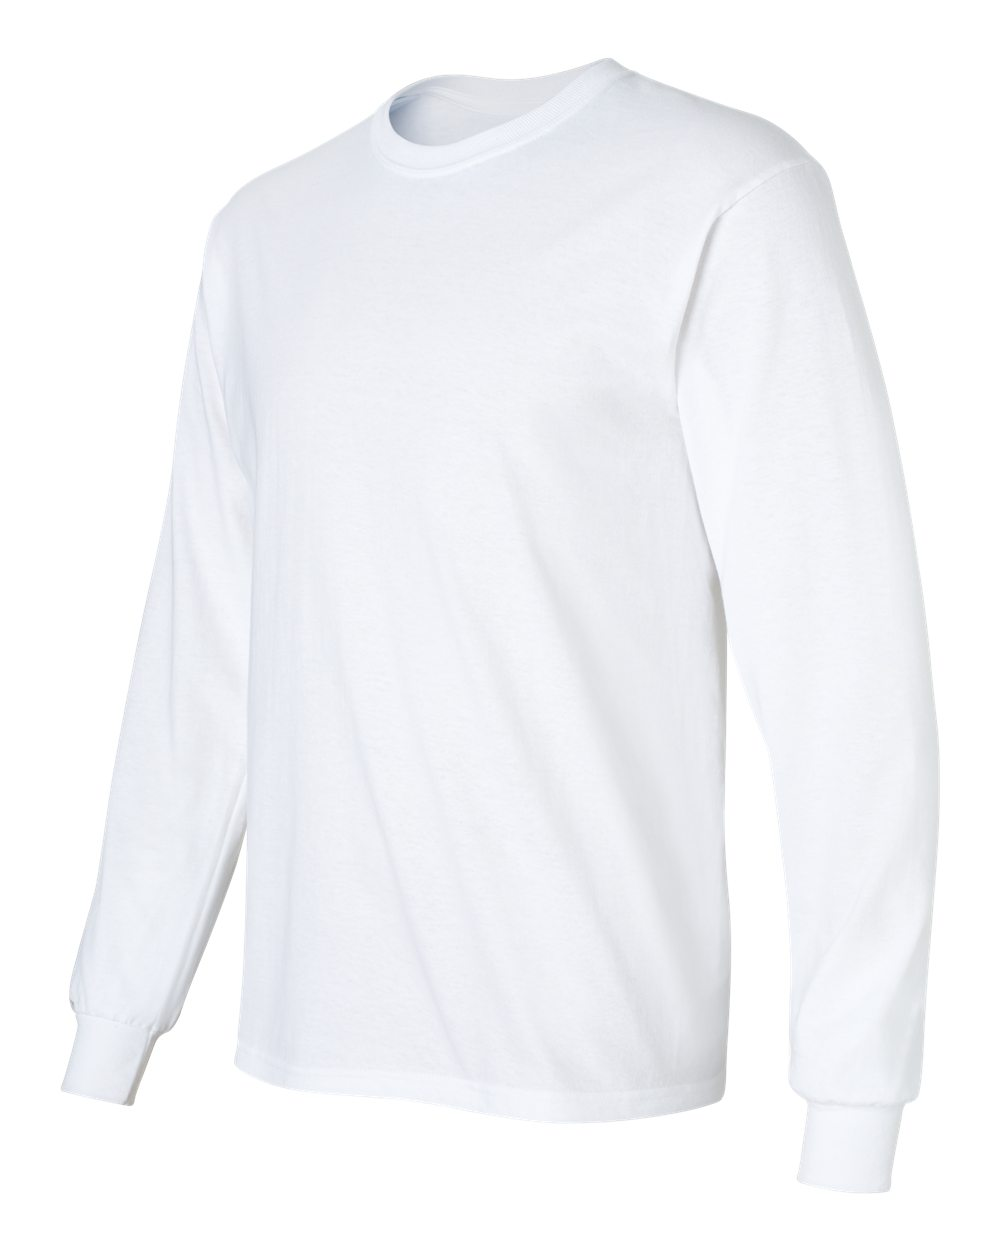 Gildan-Men-039-s-Ultra-Cotton-6-oz-Long-Sleeve-T-Shirt-G240-S-5XL thumbnail 111